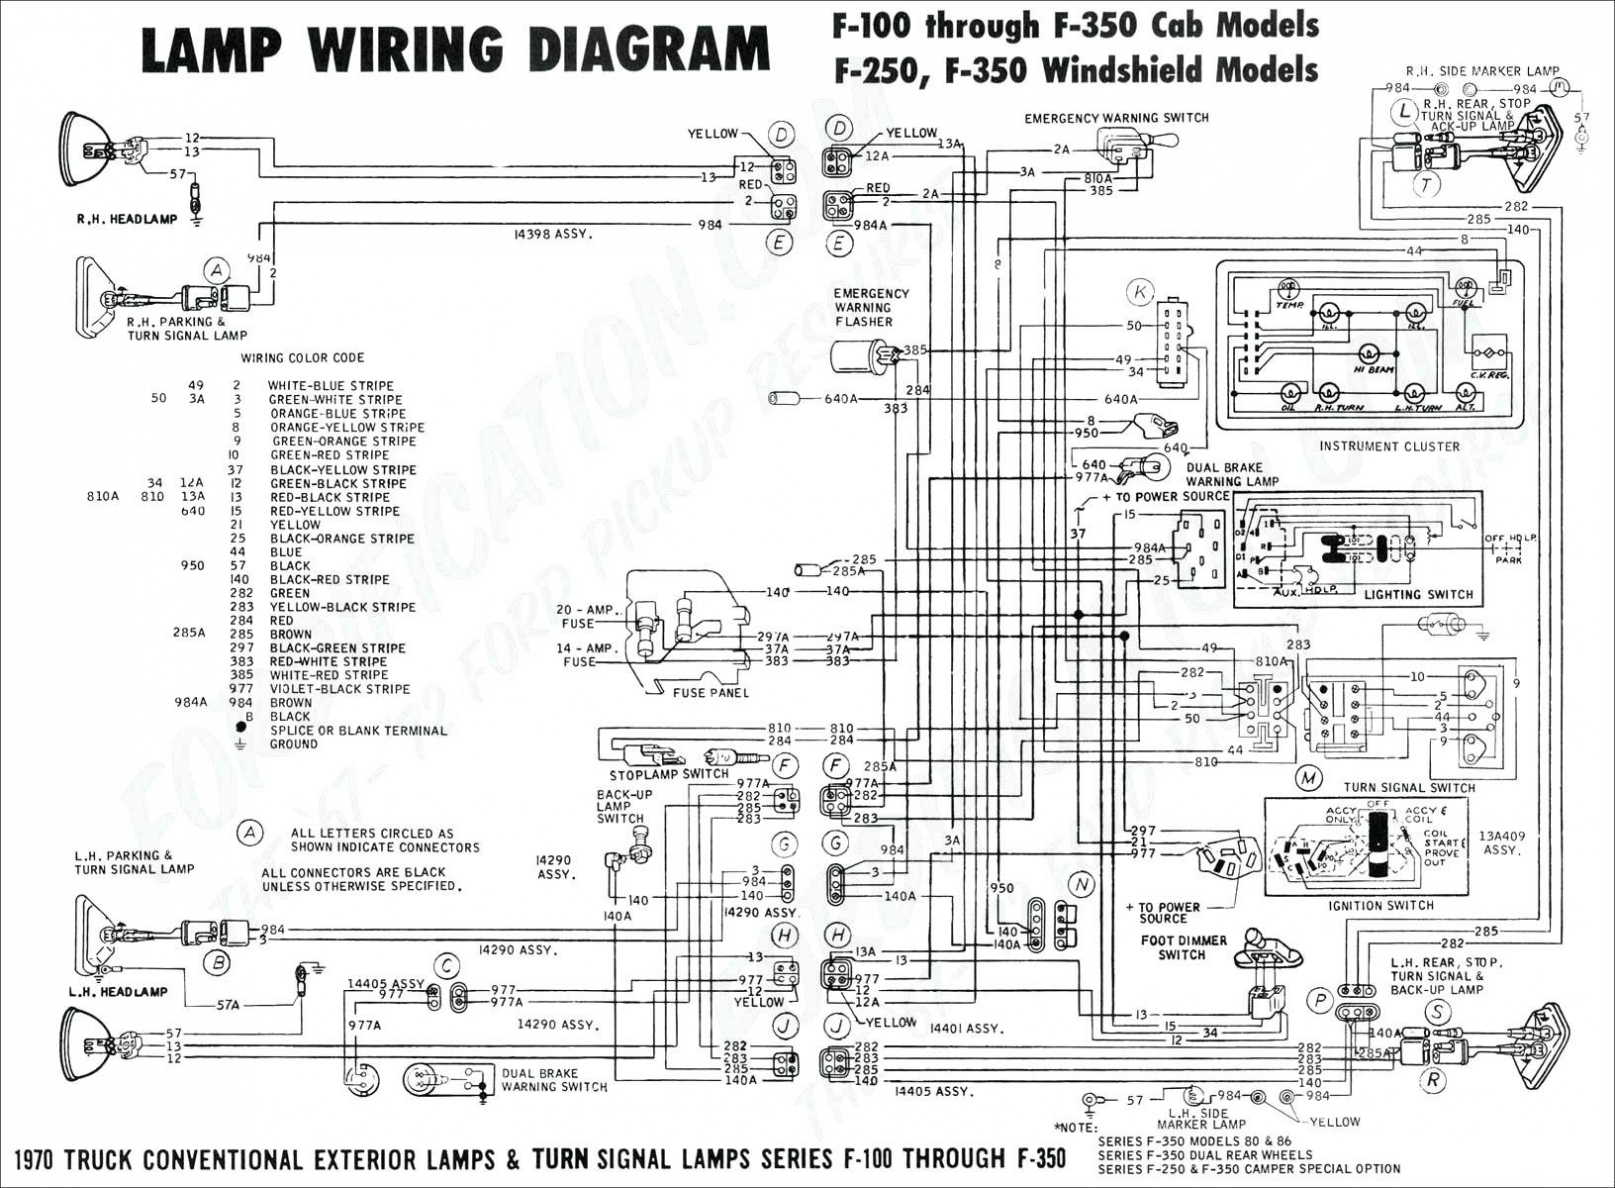 2007 Mercury Mountaineer Trailer Wiring - Wiring Diagrams Rename on